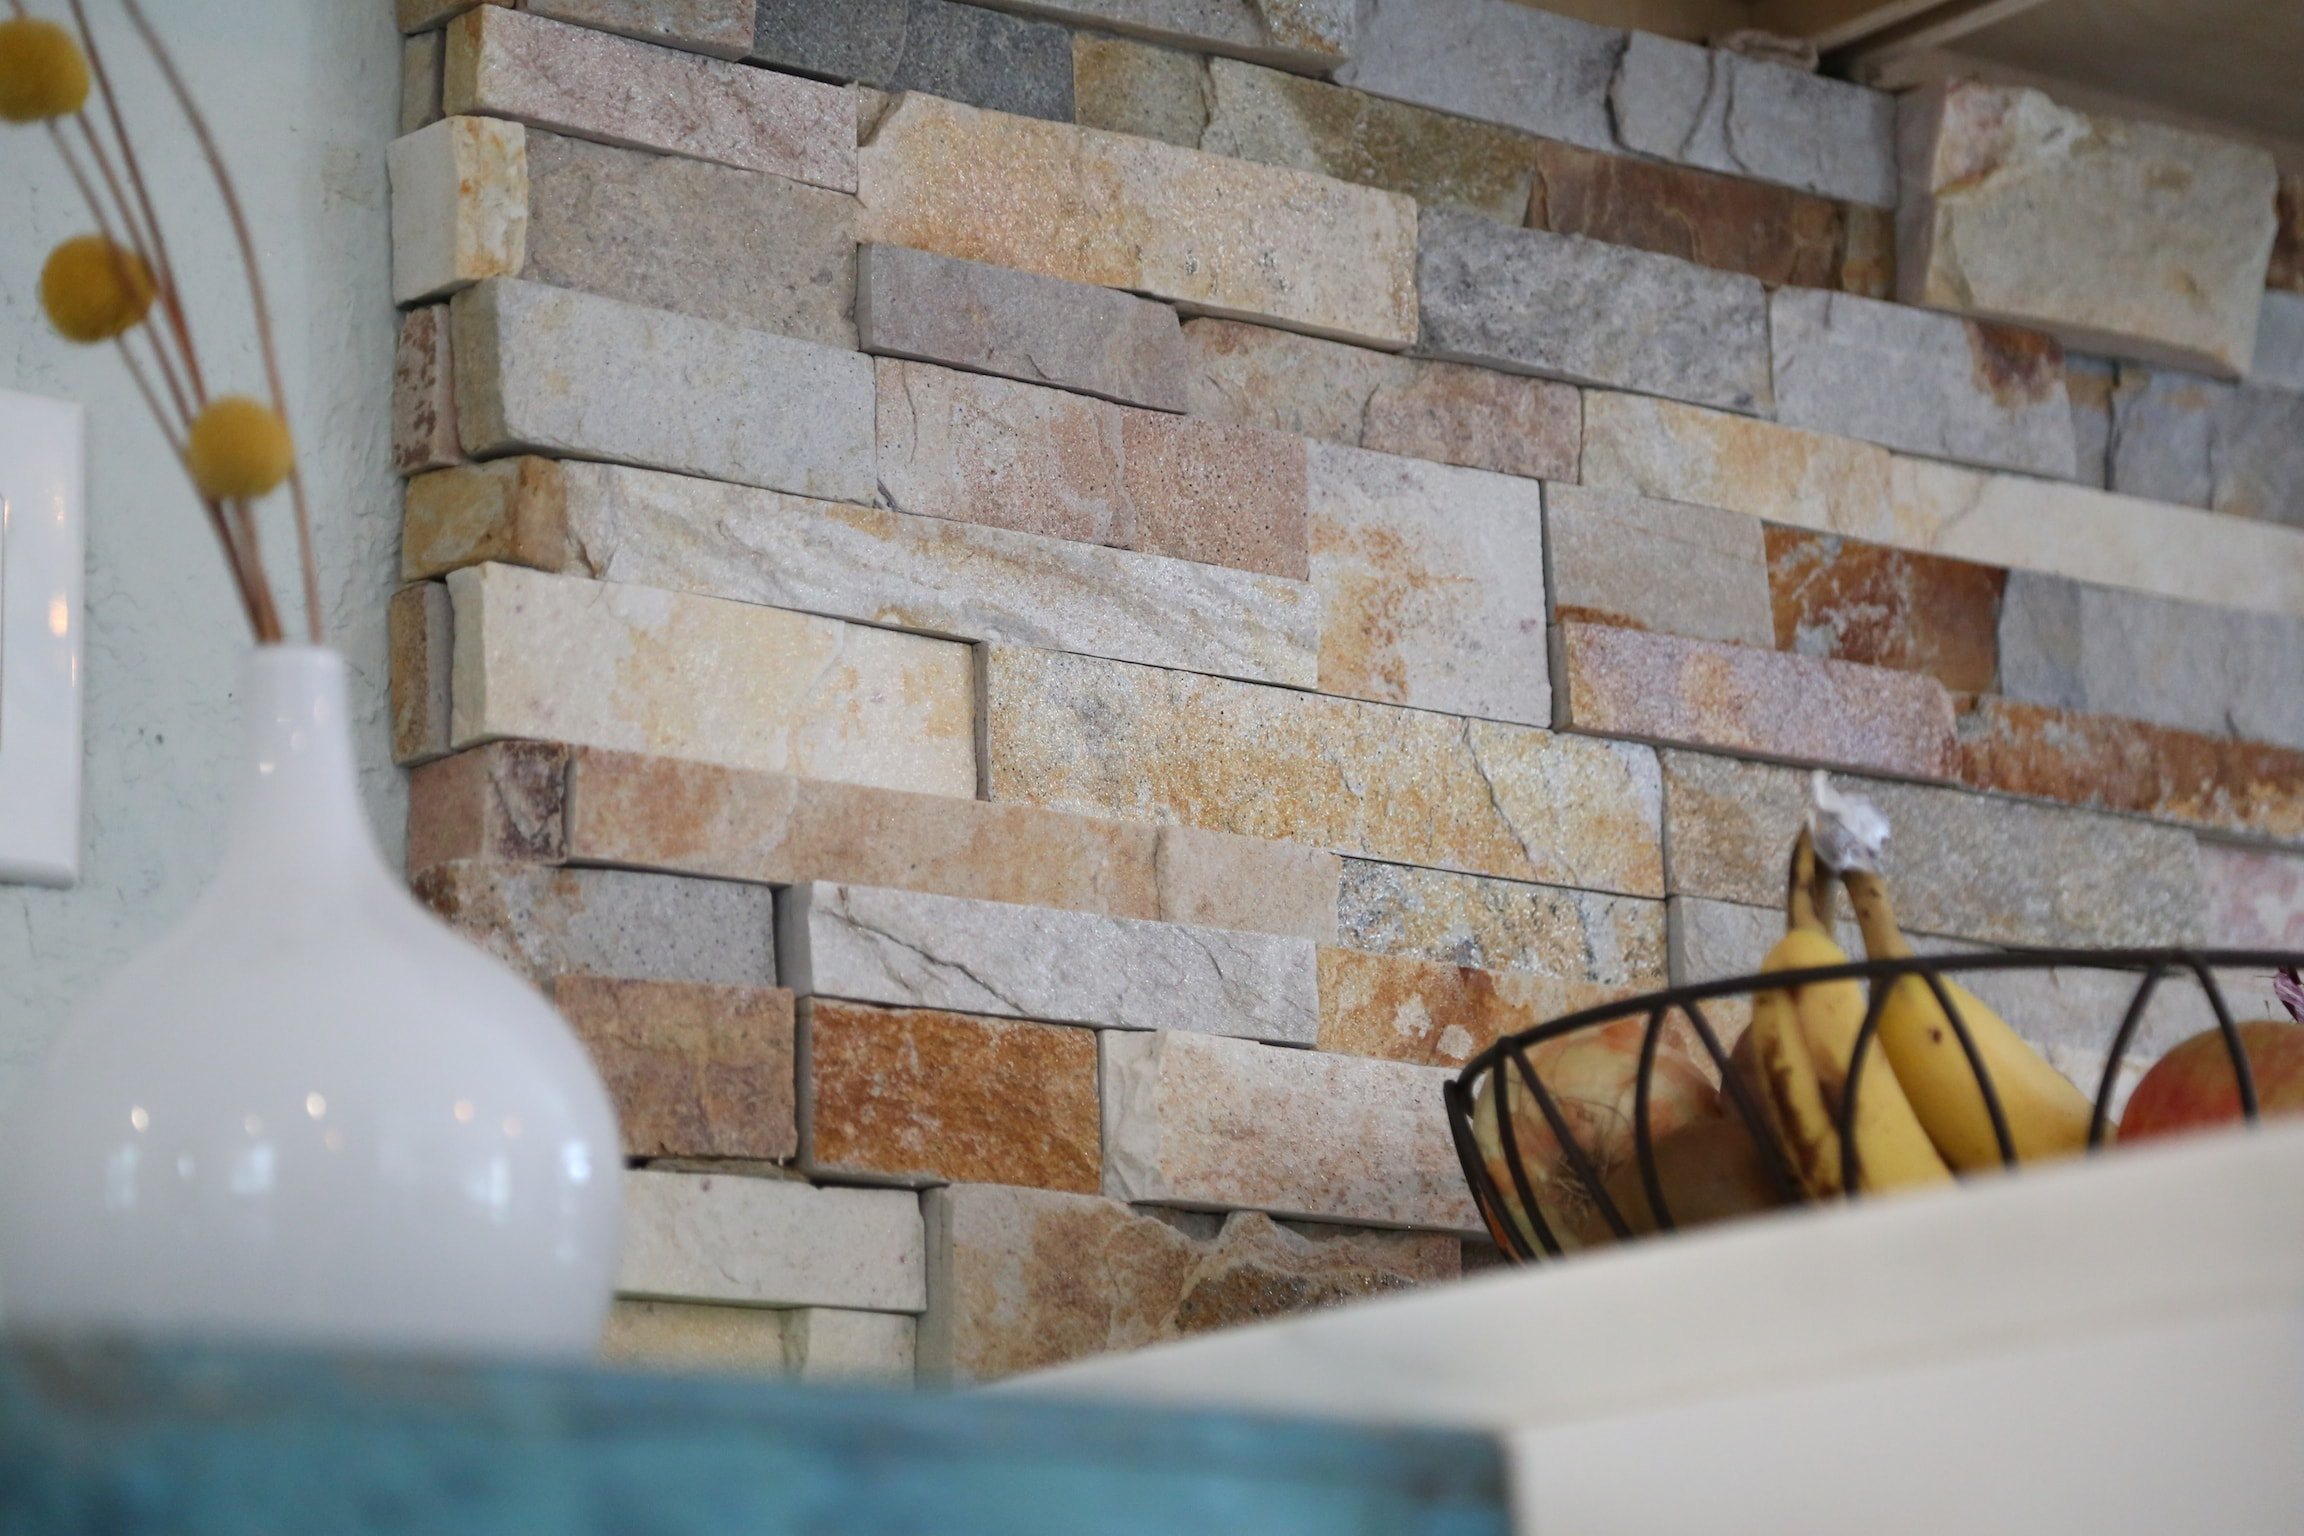 Norstone Split Face Stone Veneer in Aztec Color used on a Kitchen Backsplash